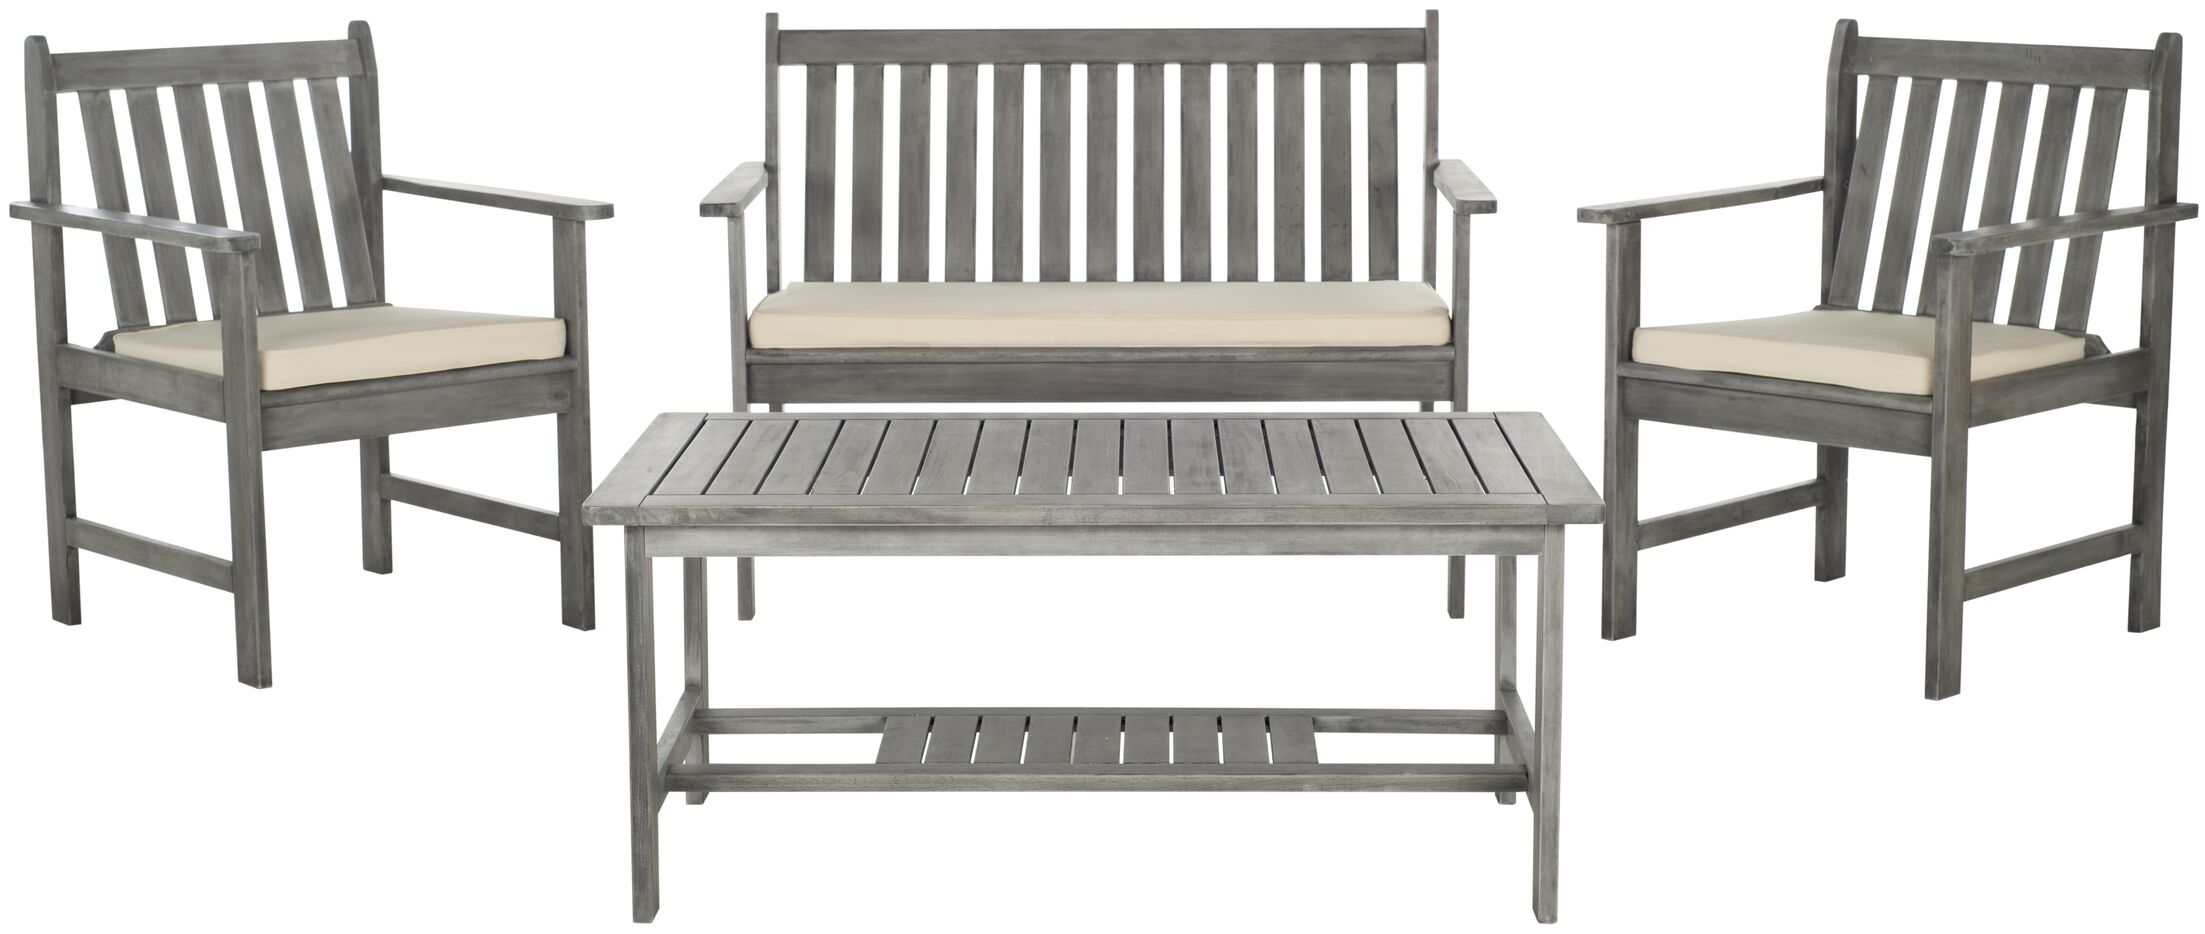 Joliet 4 Piece Sofa Set with Cushions Color: Grey Wash